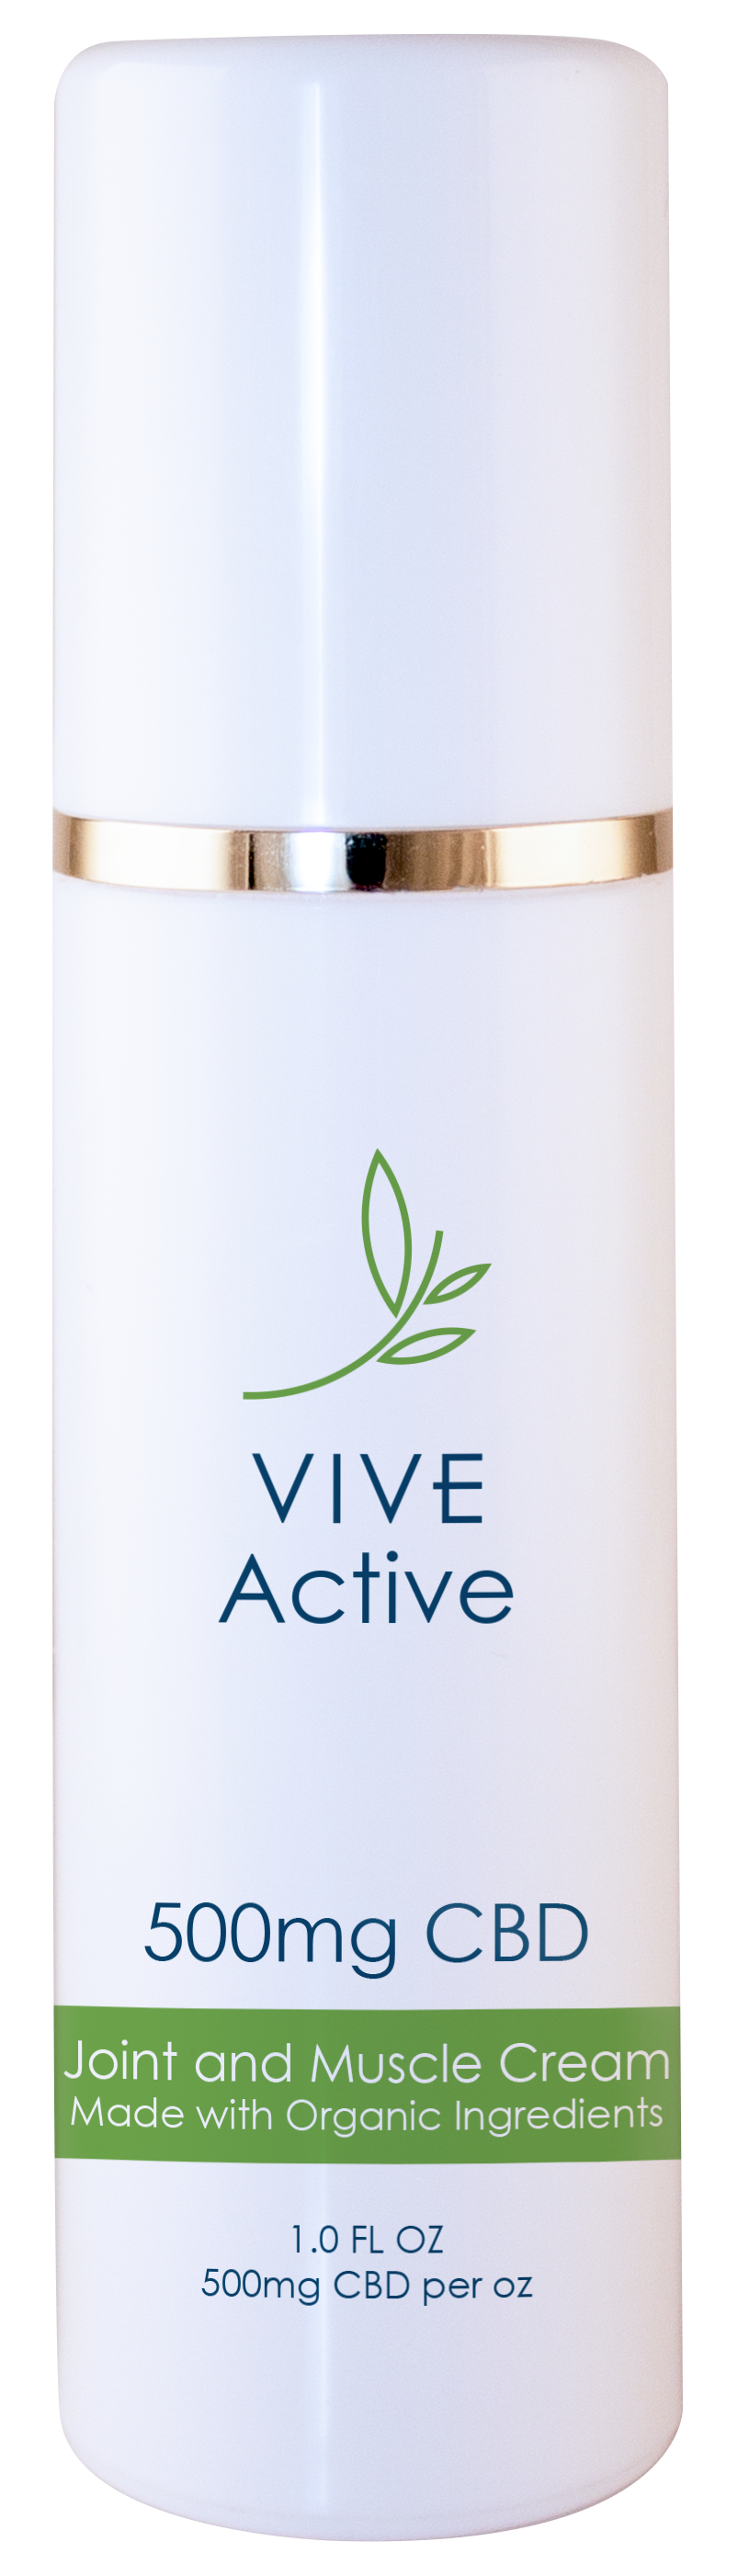 VIVE Active is a CBD cream for joint and muscles.